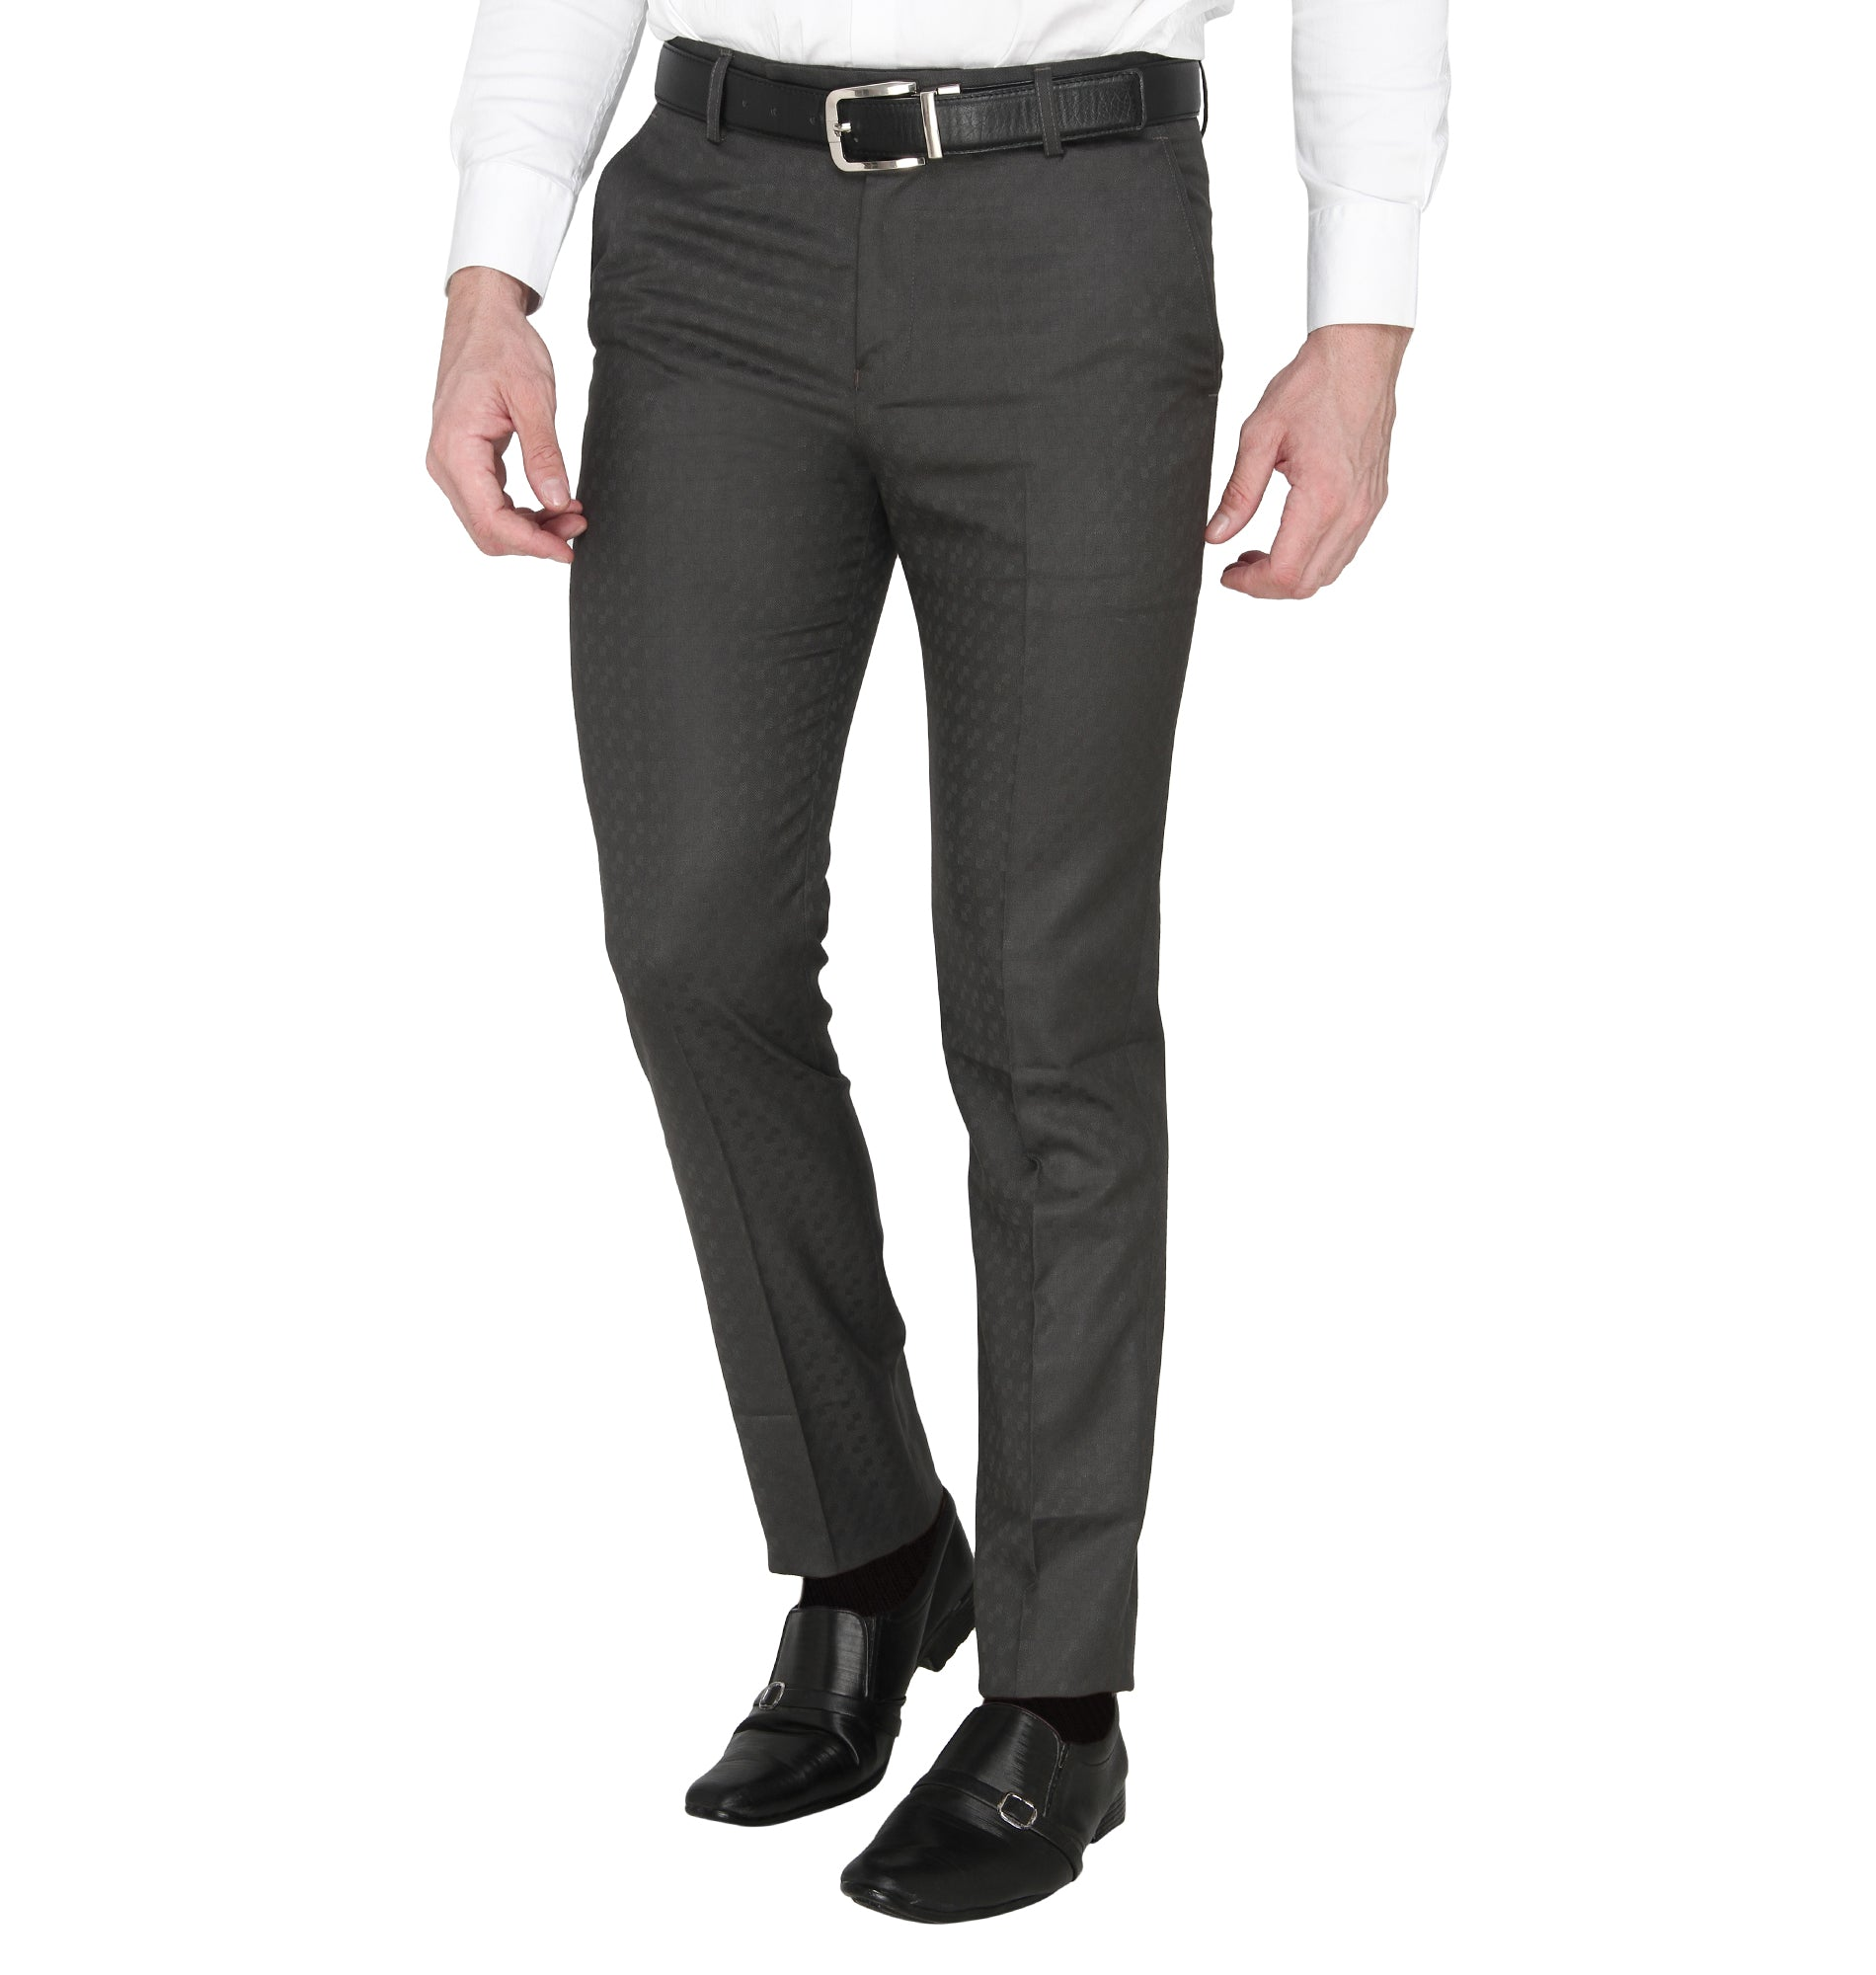 Zido Men's Slim Fit Regular  Formal Trouser - Pant ZI15084